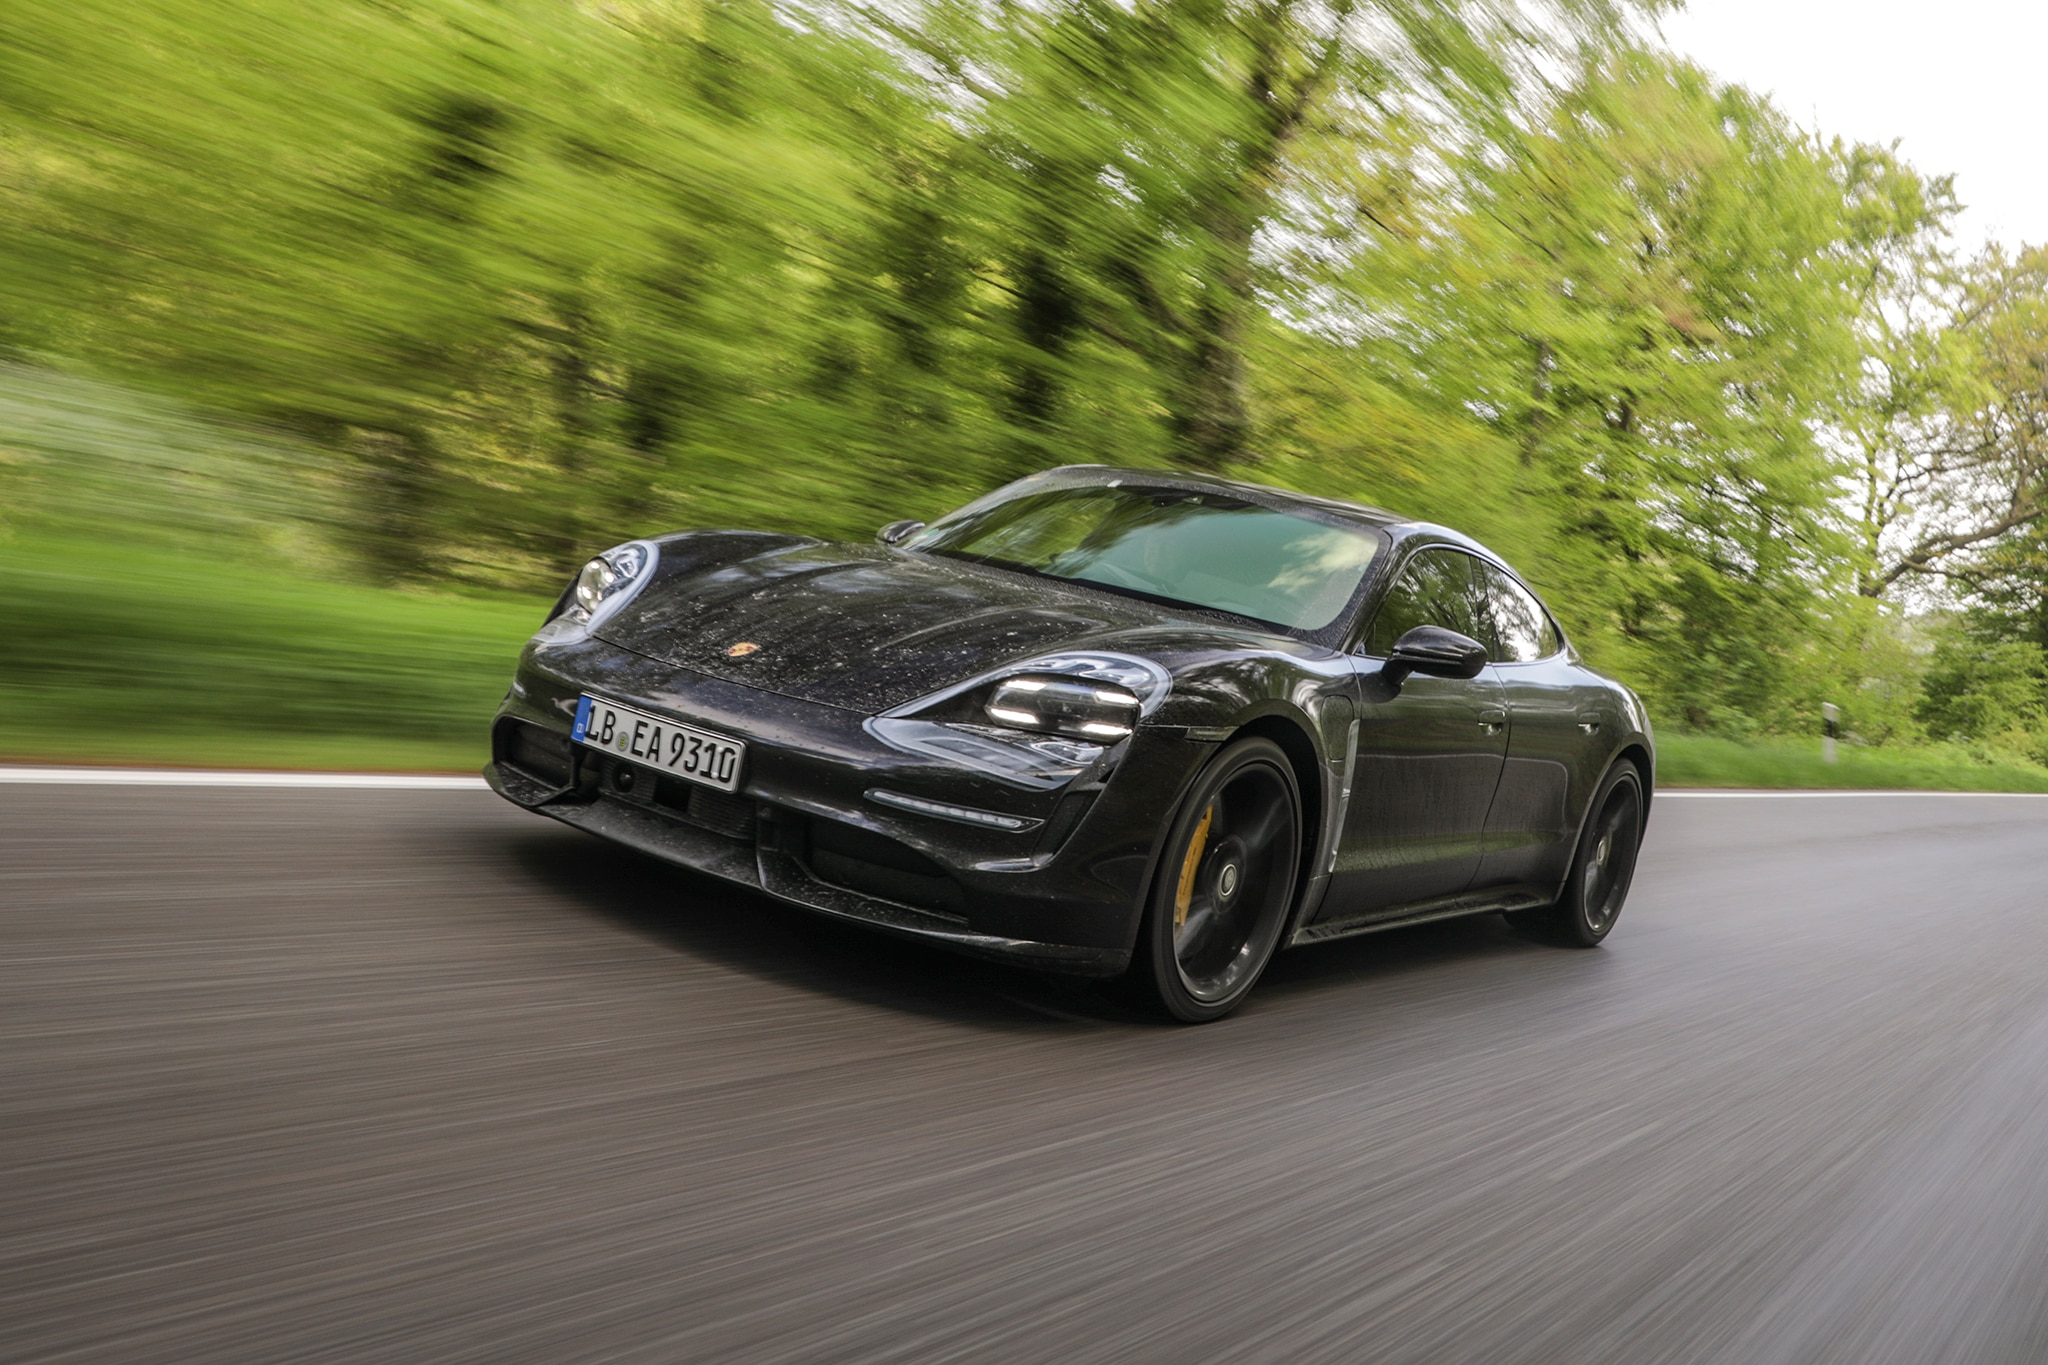 2020 Porsche Taycan Turbo Review: It Redefines Speed